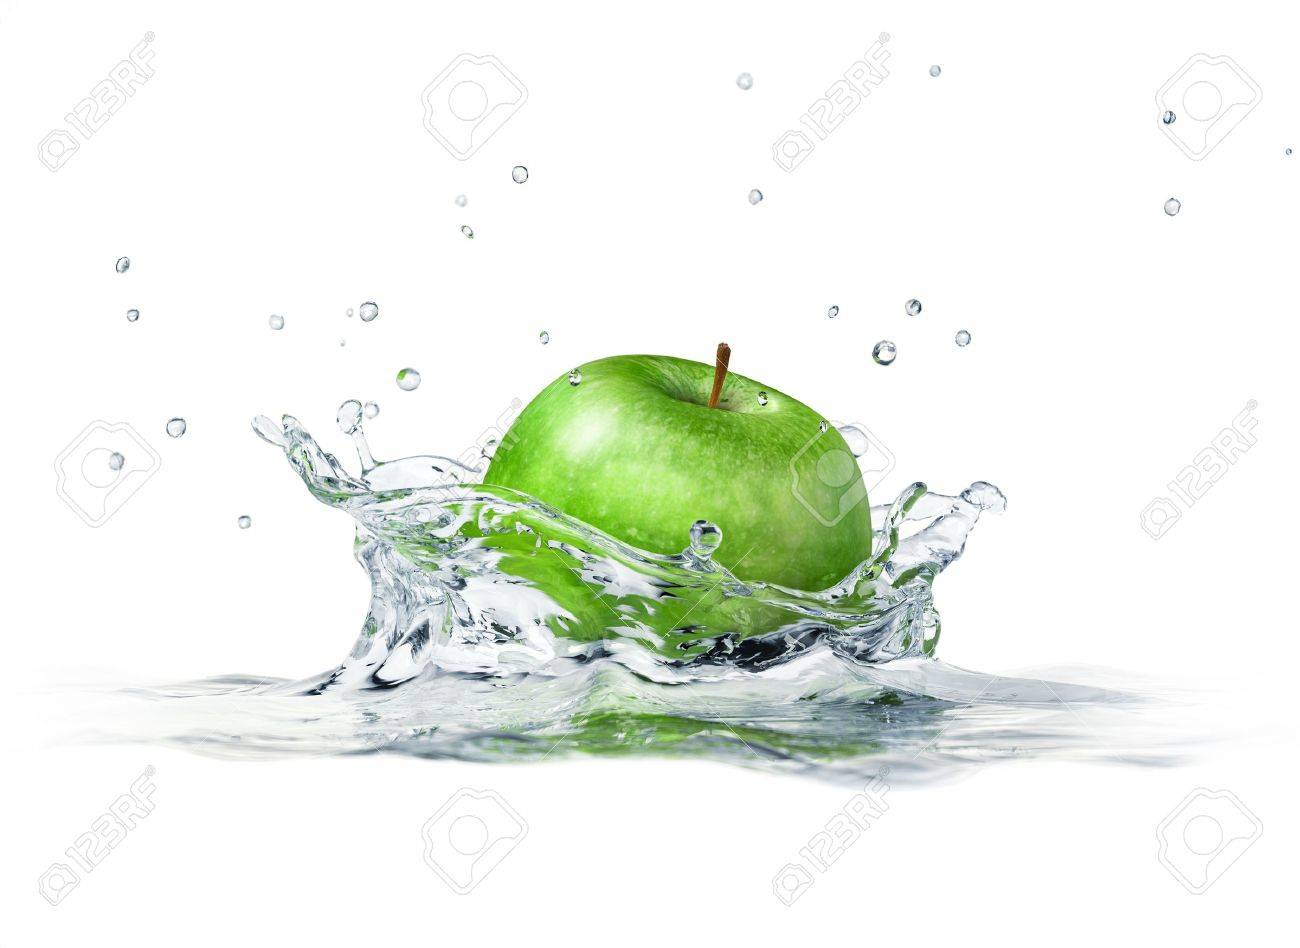 Green apple splashing into water. close up side view, with depth of field. 3 D digital rendering, on white background. Stock Photo - 11779859